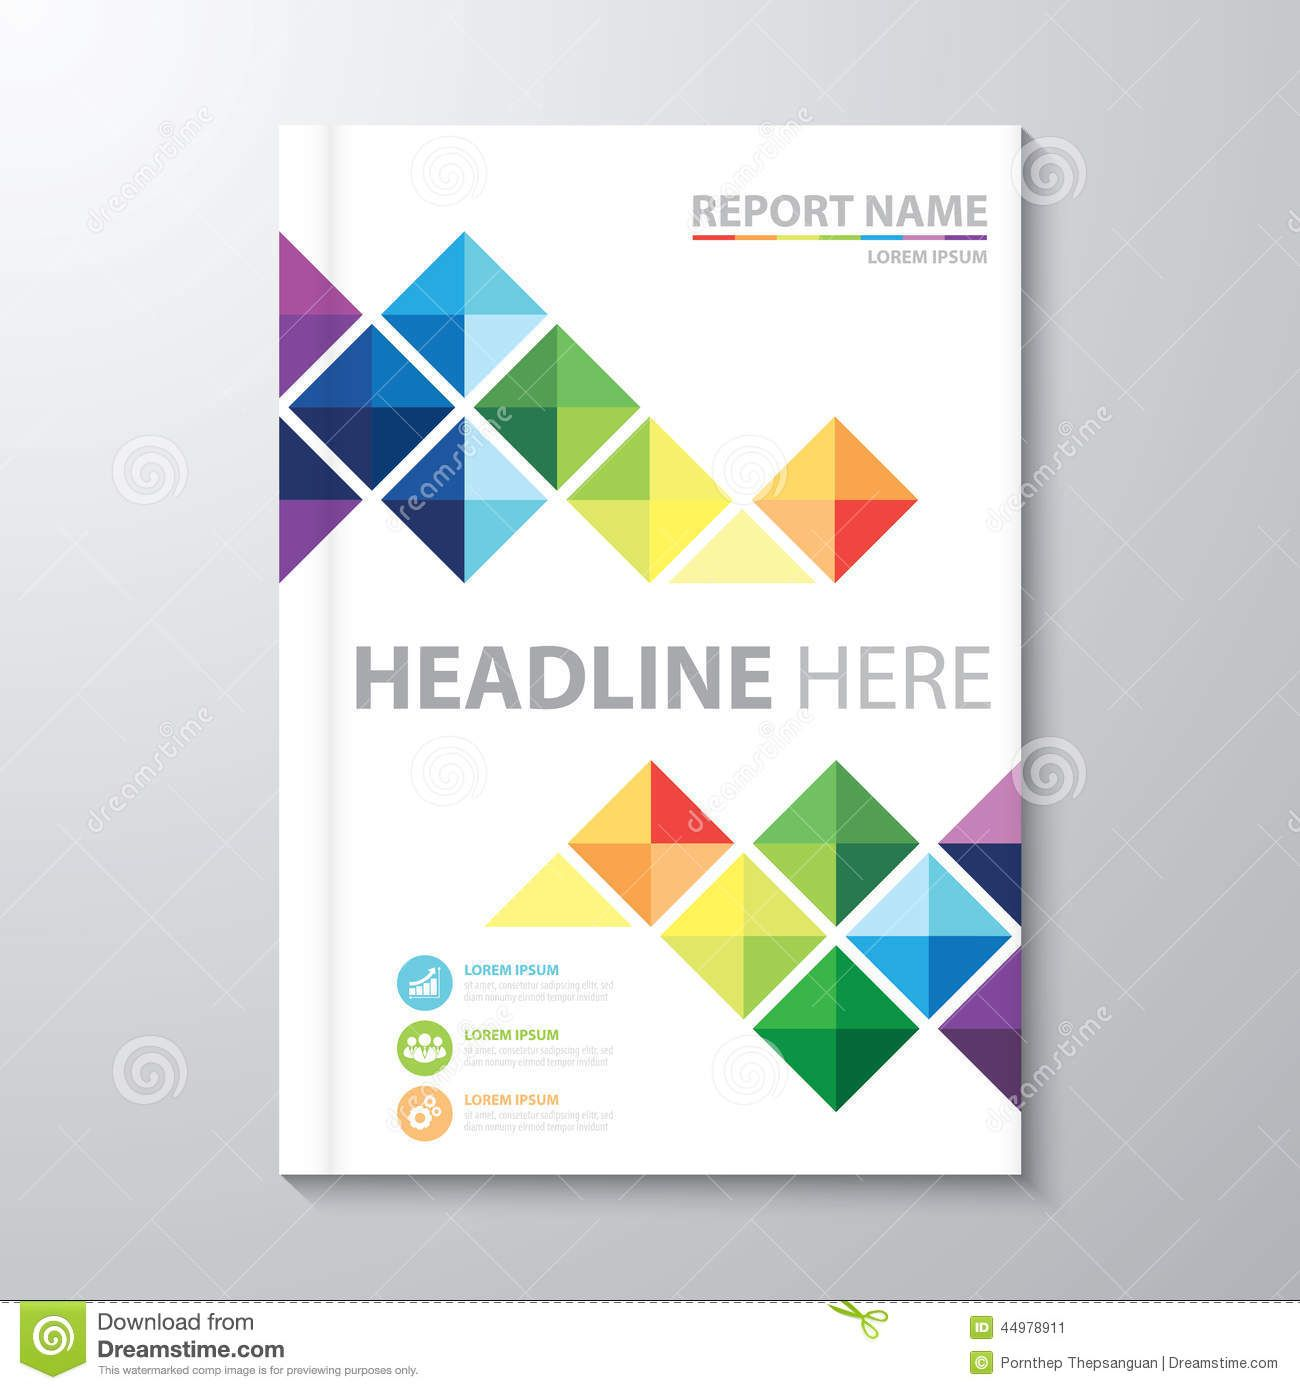 Annual report cover page design templates ukrandiffusion annual report cover design template cover pinterest annual maxwellsz